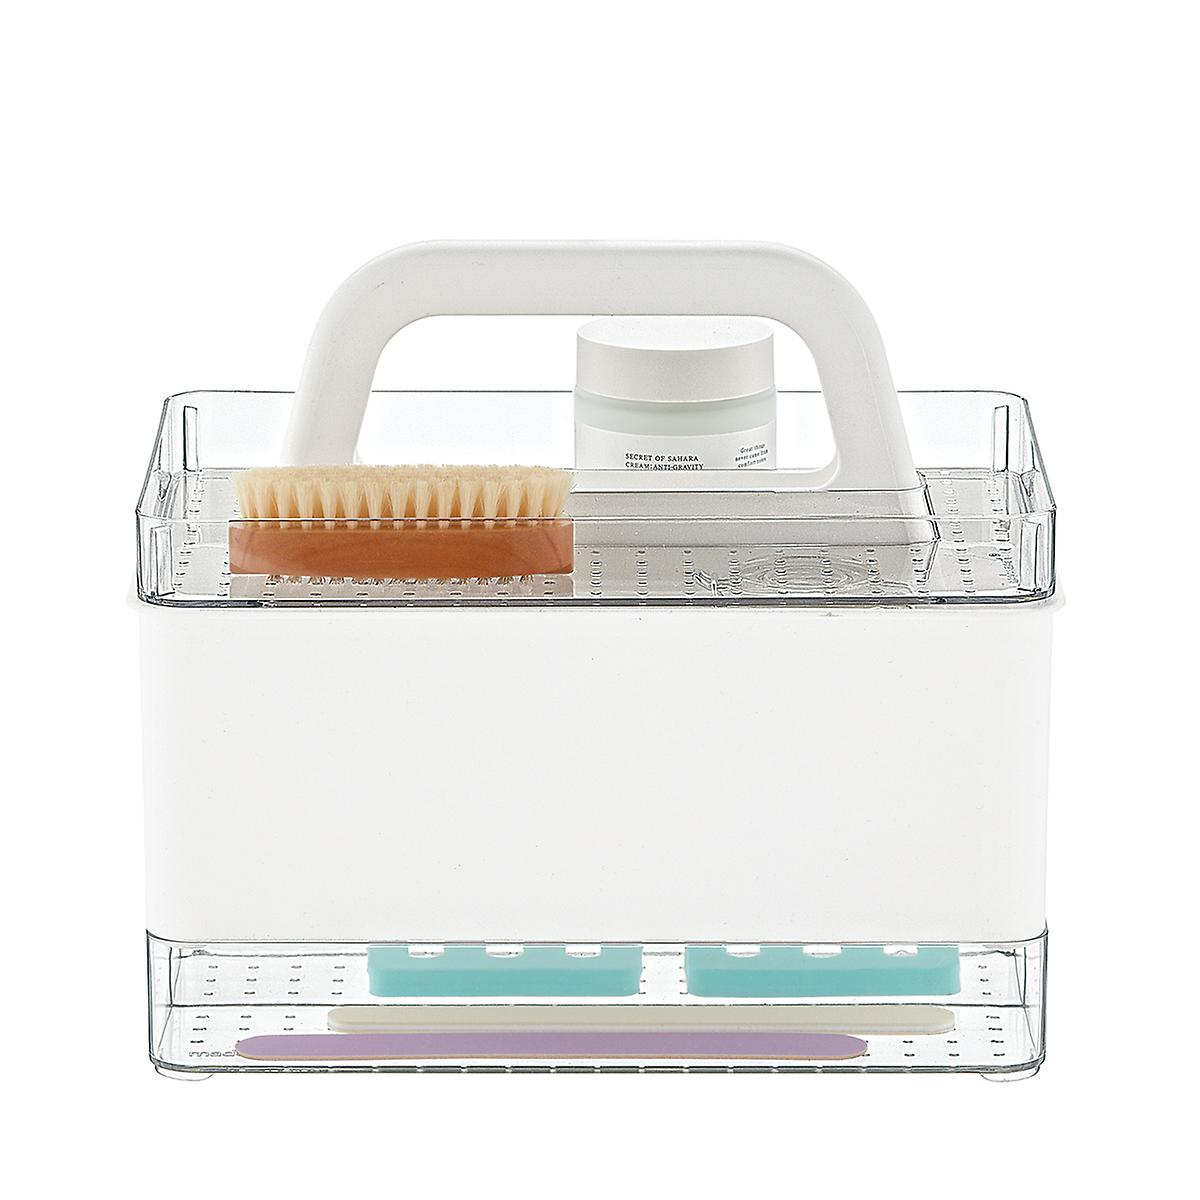 madesmart Stacking Caddy Bath Starter Kit